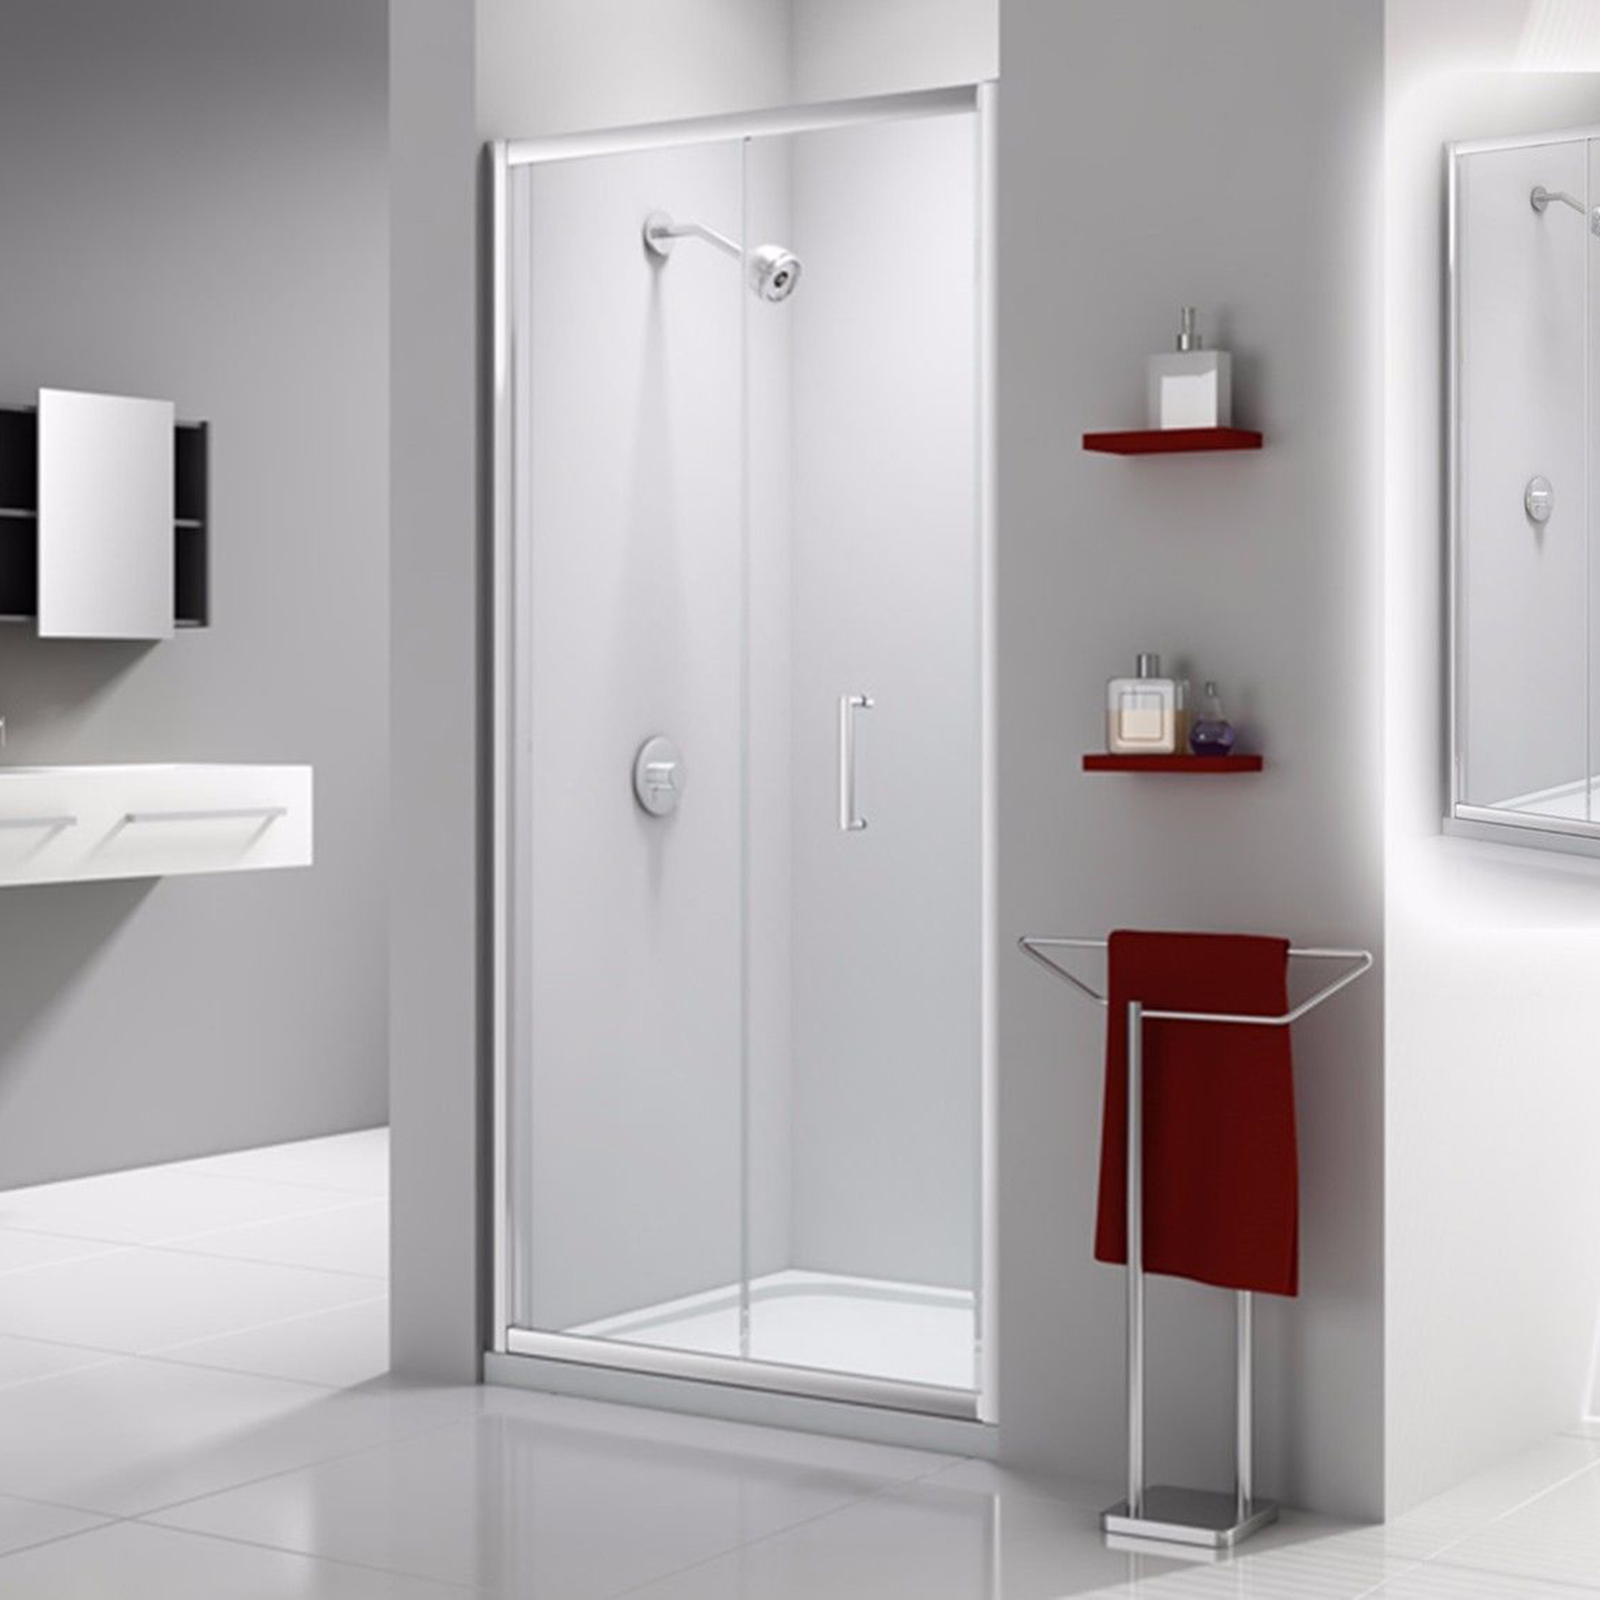 Merlyn Ionic Express Bifold Door Mm  At Allbits Plumbing - Express bathrooms